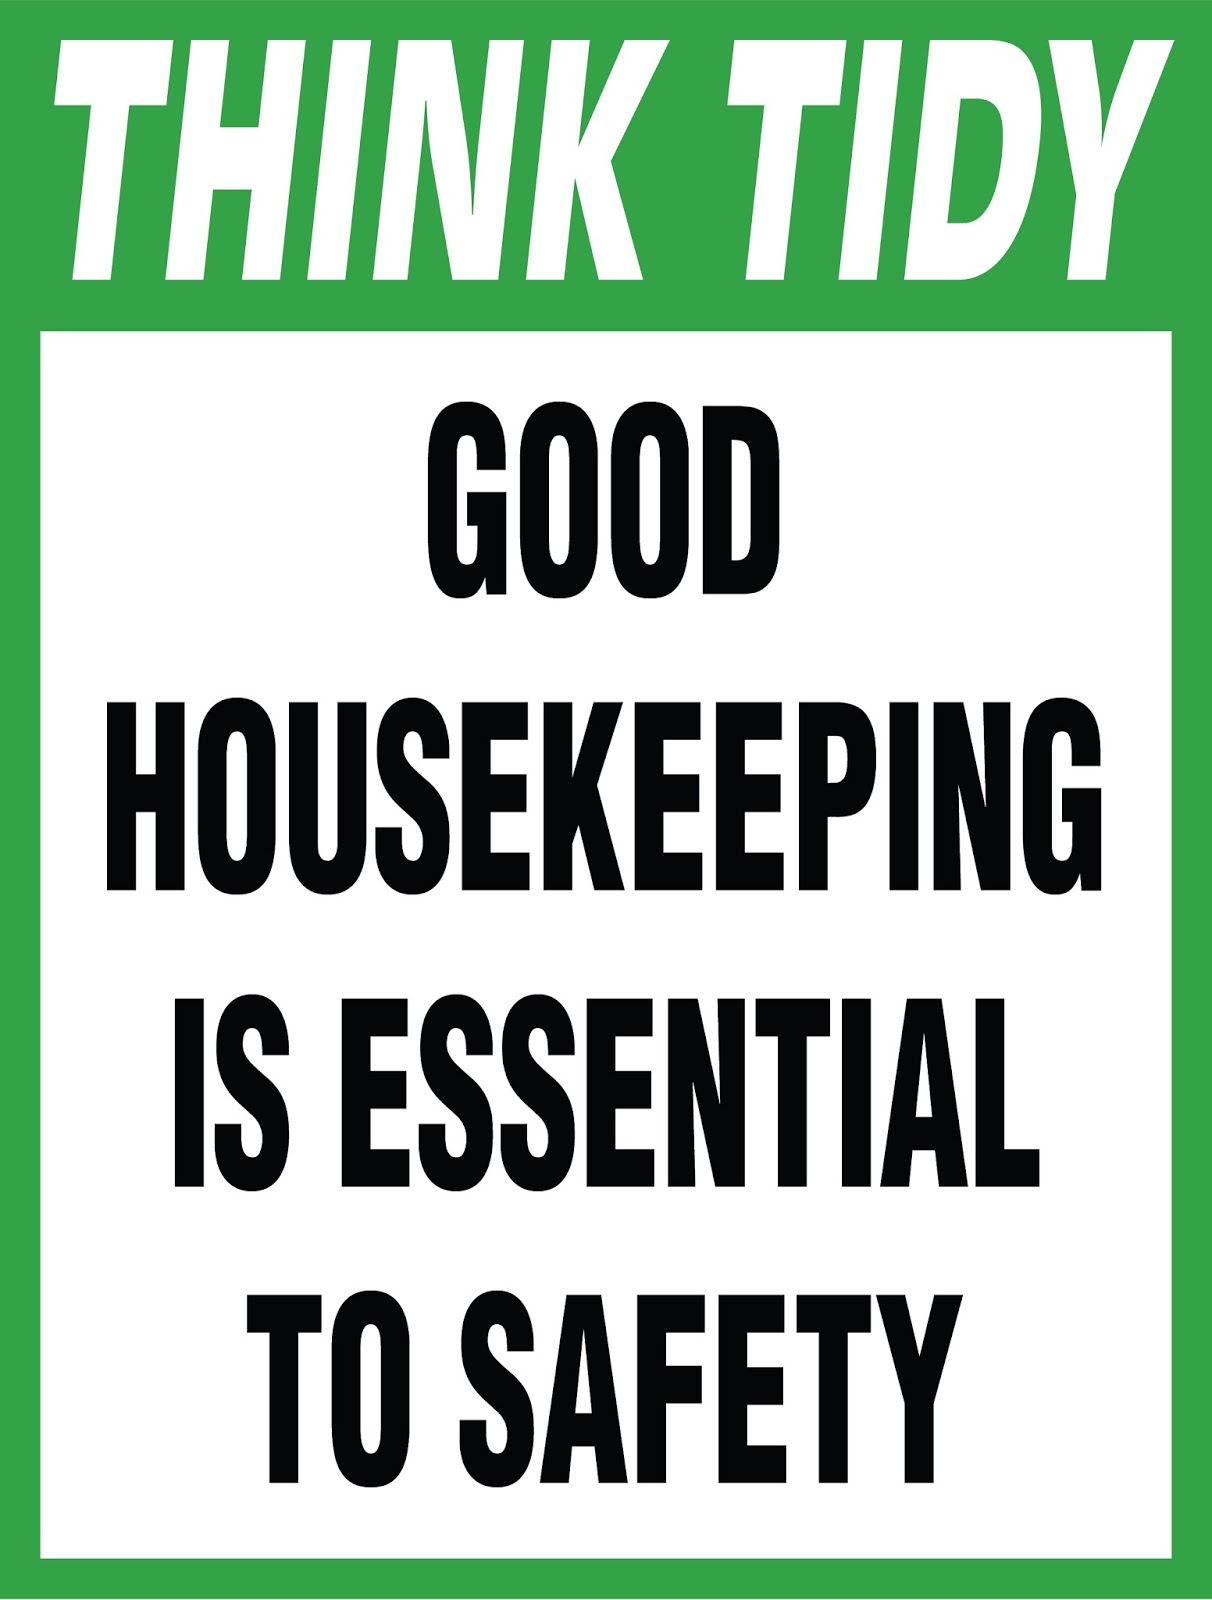 Housekeeping Quotes House Cleaning Sayings Slogans And Posters Free Online  Safety